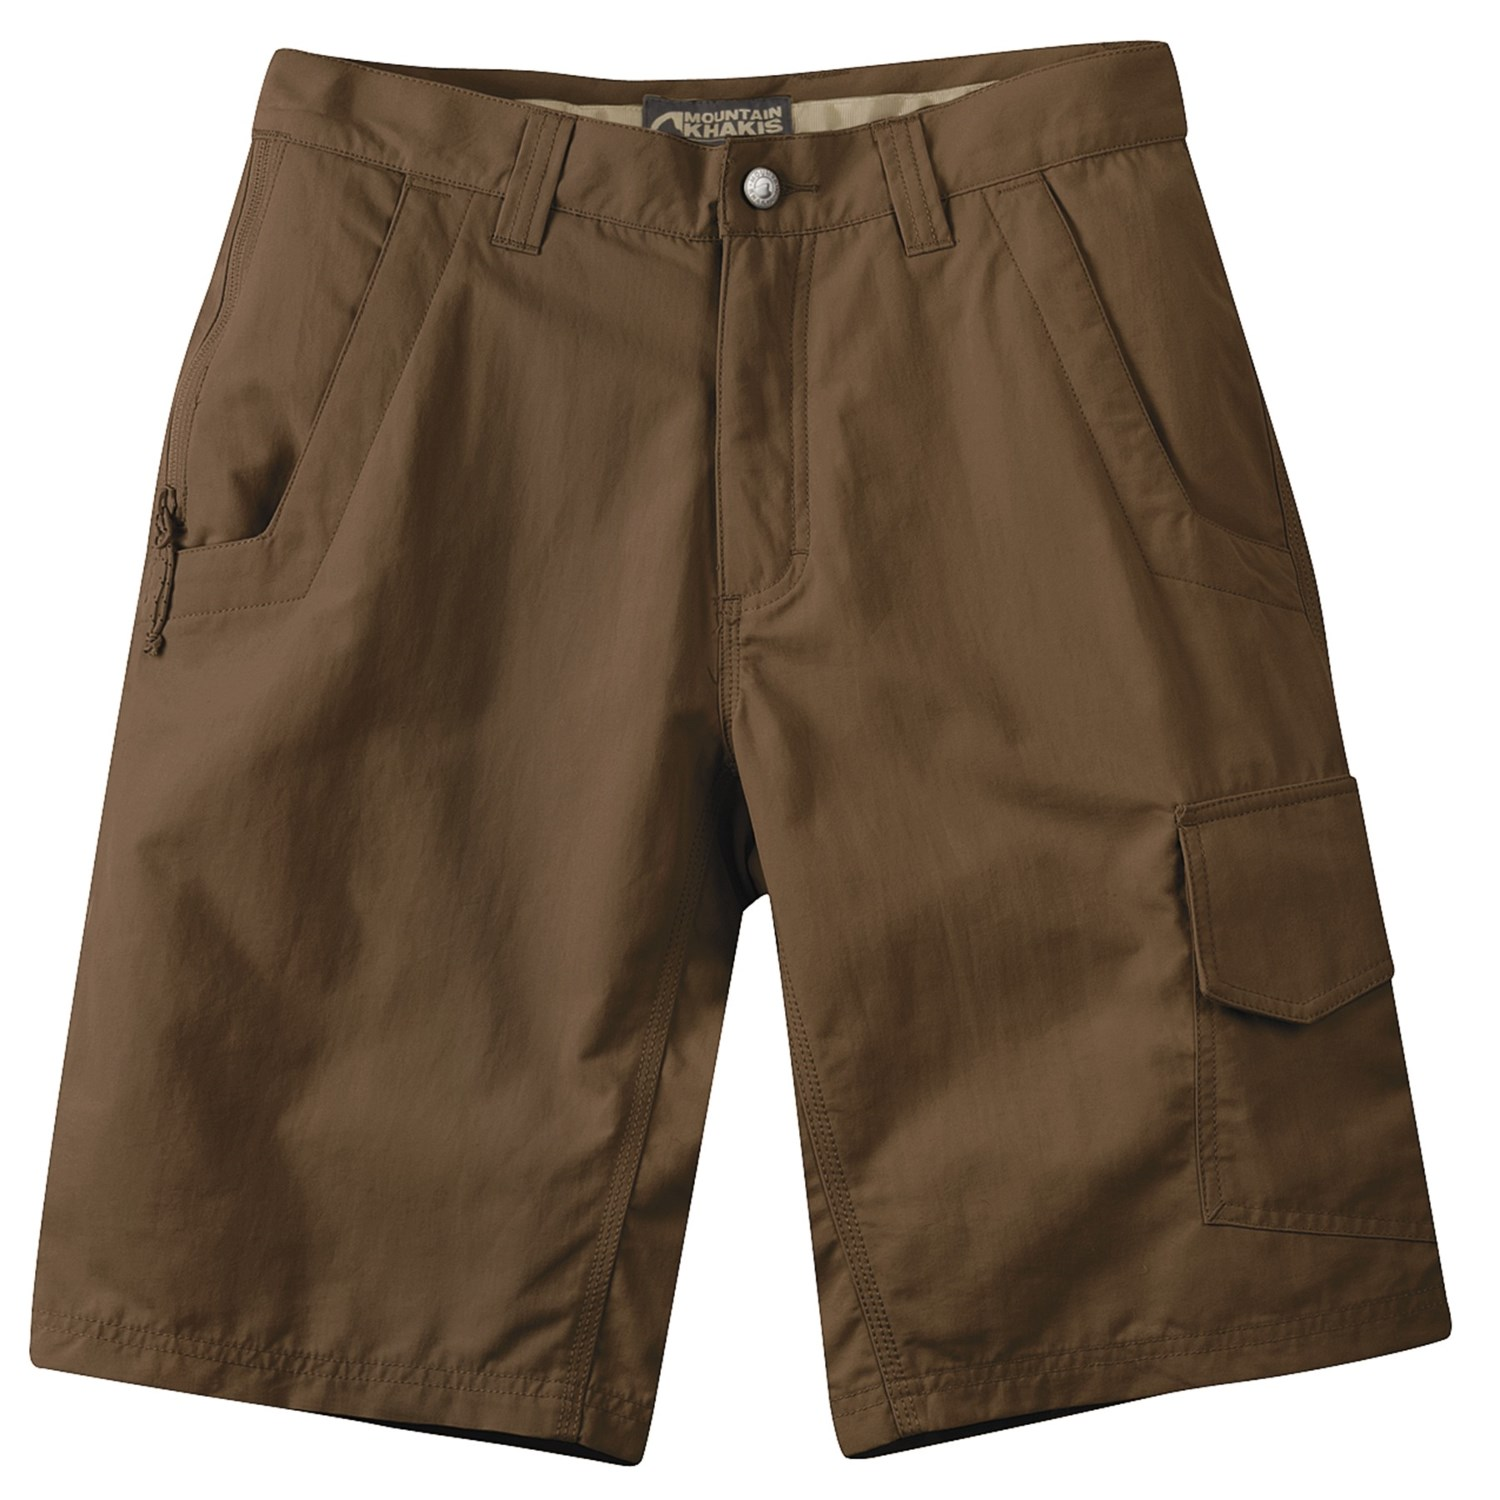 Everyone loves khakis in cargo pants which we offer with and without pockets, in straight leg or baggie, in slacks style, crops and more. Khakis can be worn for casual .